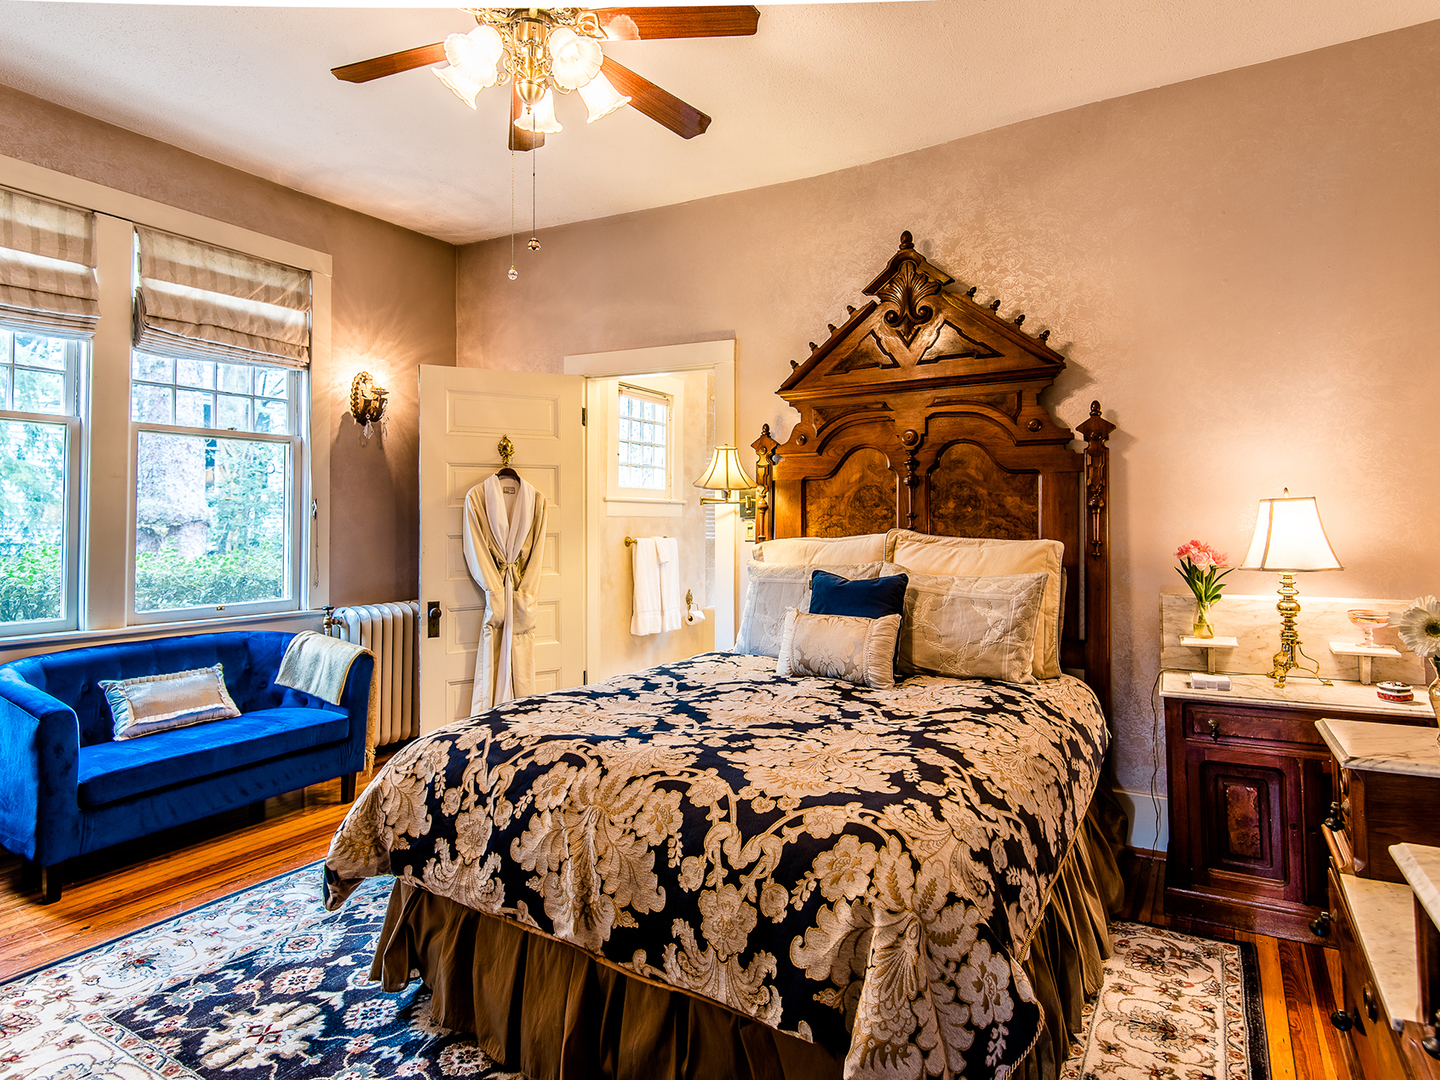 A bedroom with a large bed in a room at Cumberland Falls Bed and Breakfast Inn.